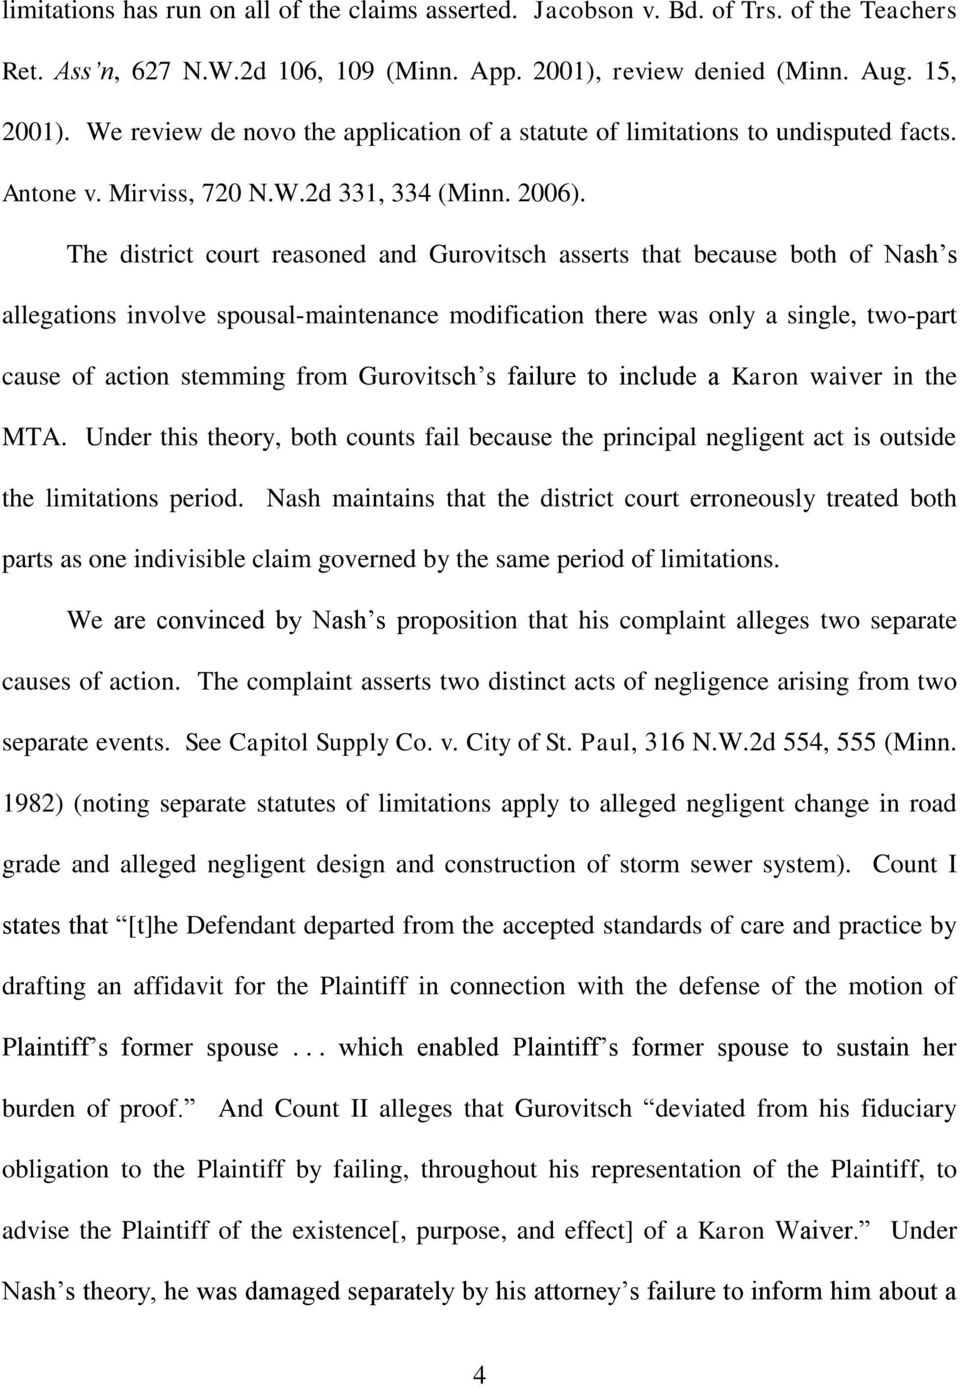 The district court reasoned and Gurovitsch asserts that because both of Nash s allegations involve spousal-maintenance modification there was only a single, two-part cause of action stemming from